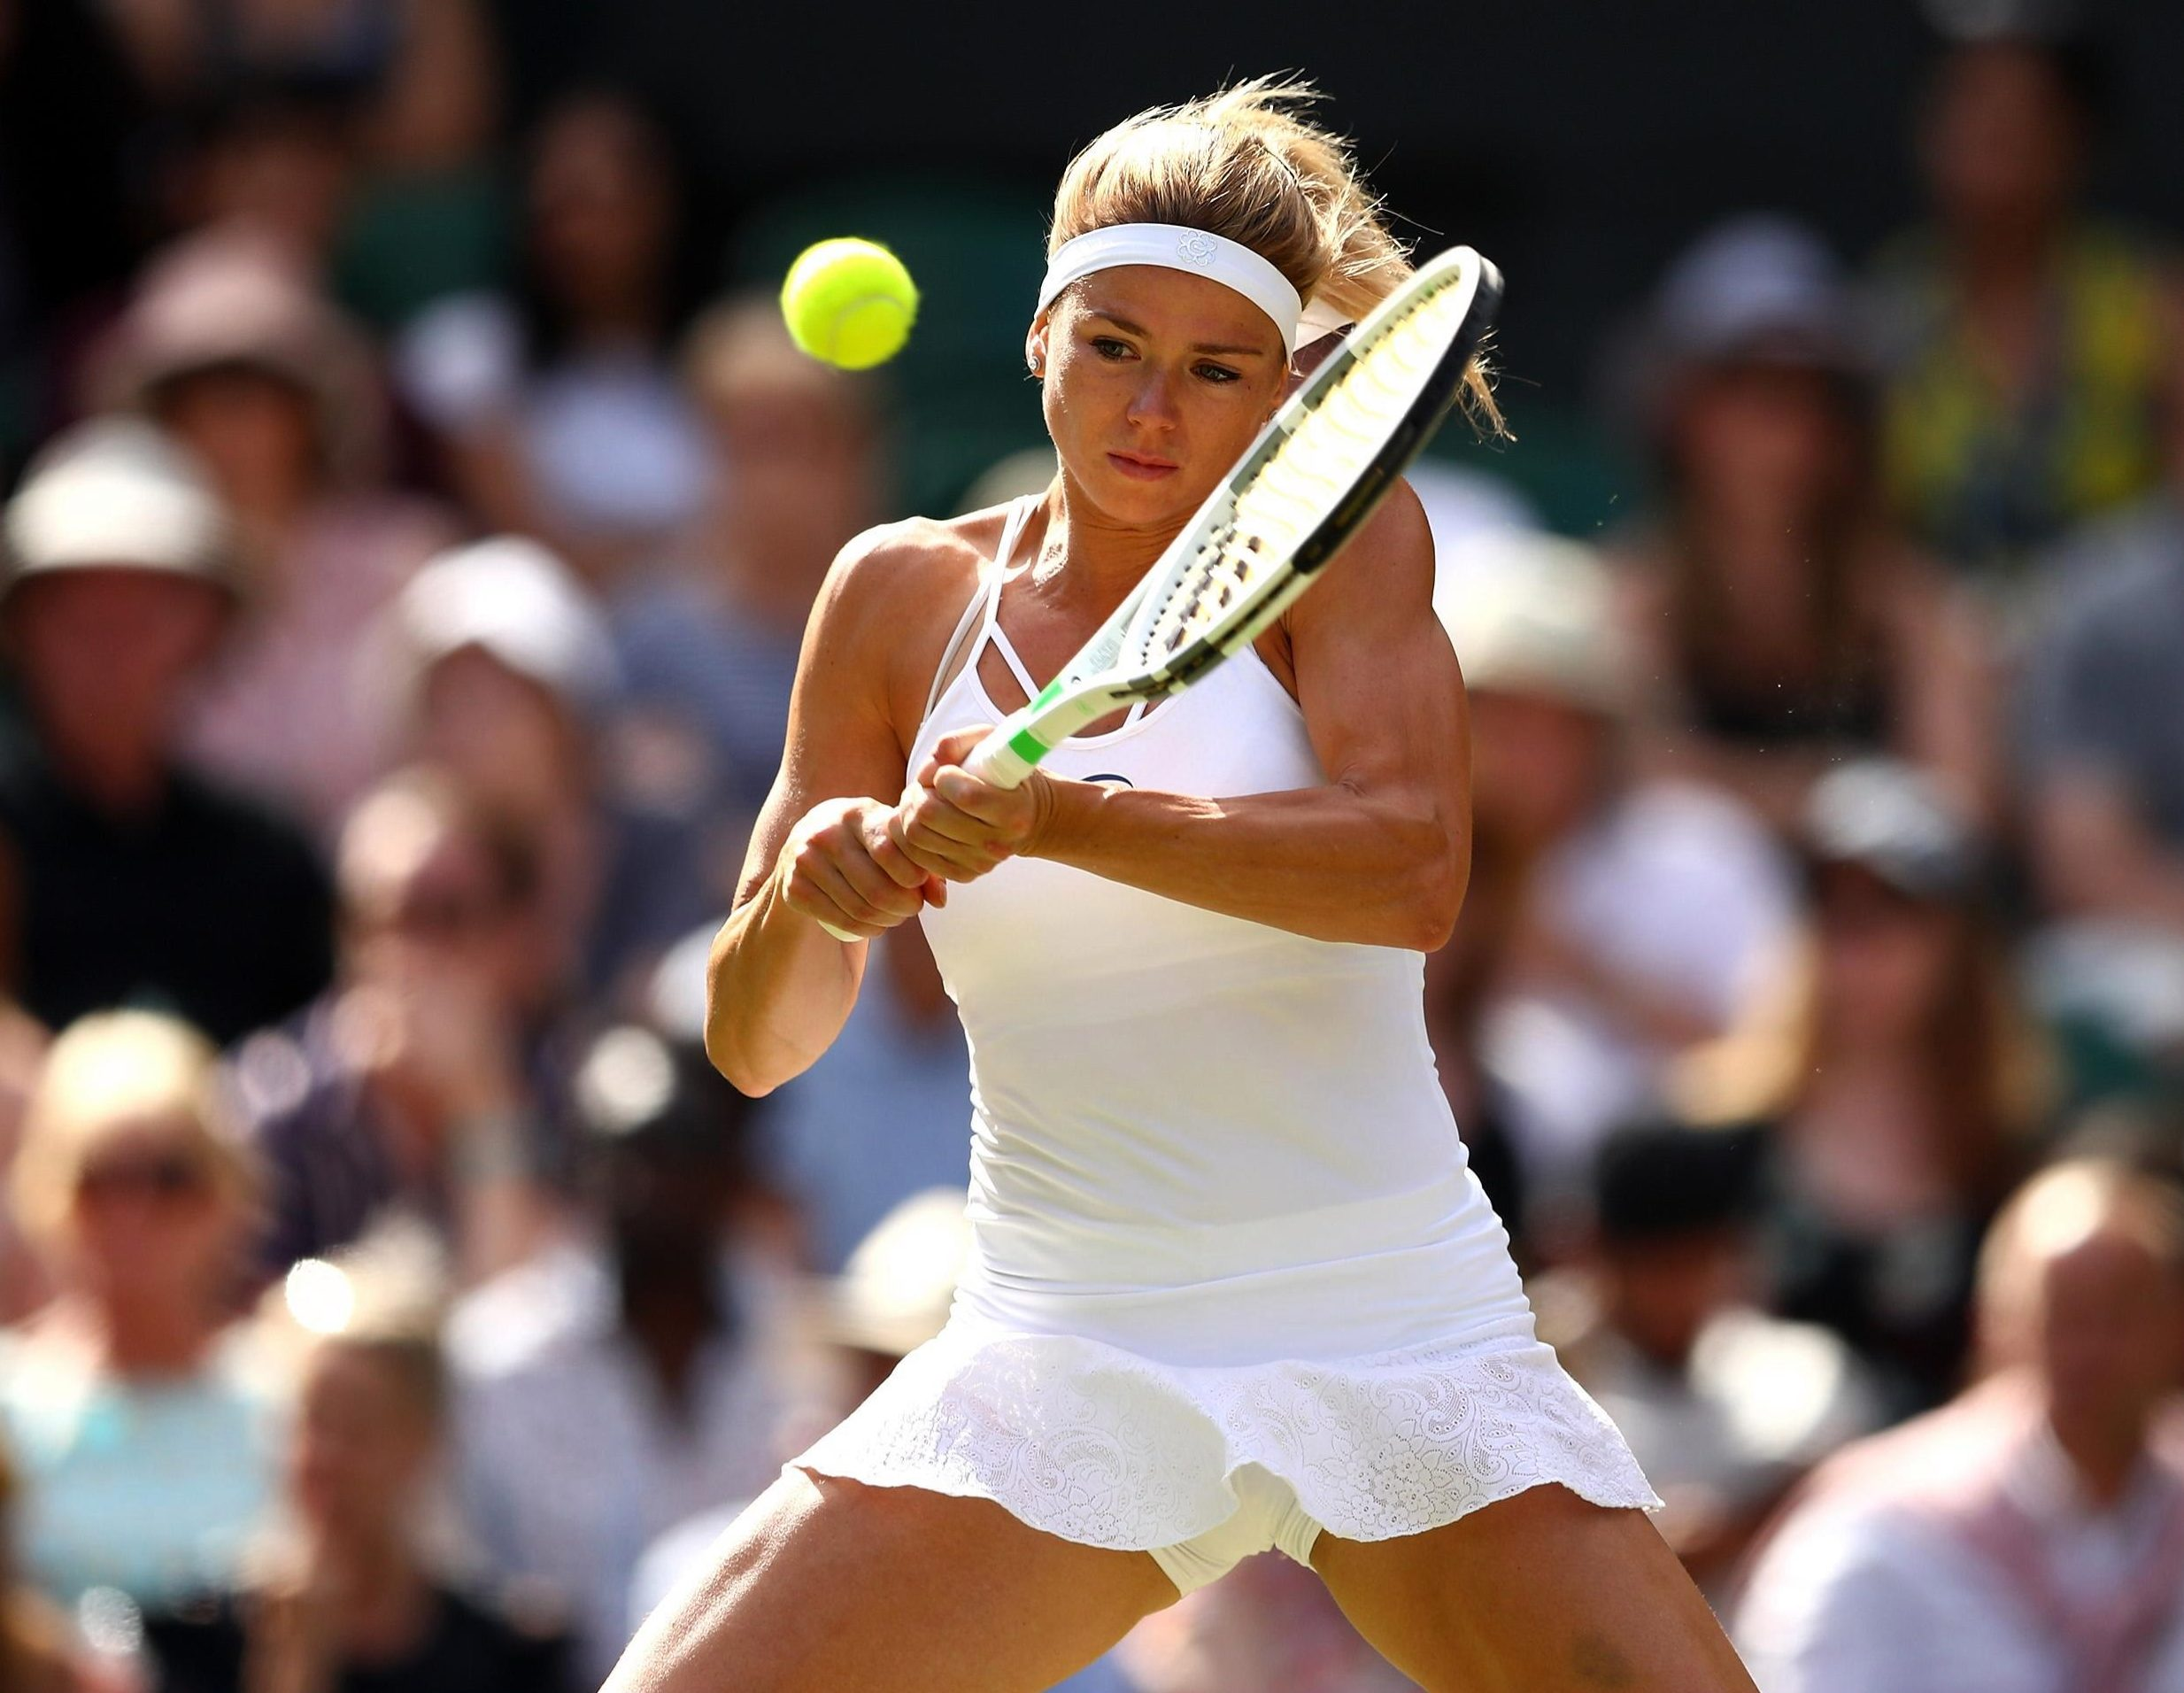 Camila Giorgi threatened an upset by taking the first set against Serena Williams